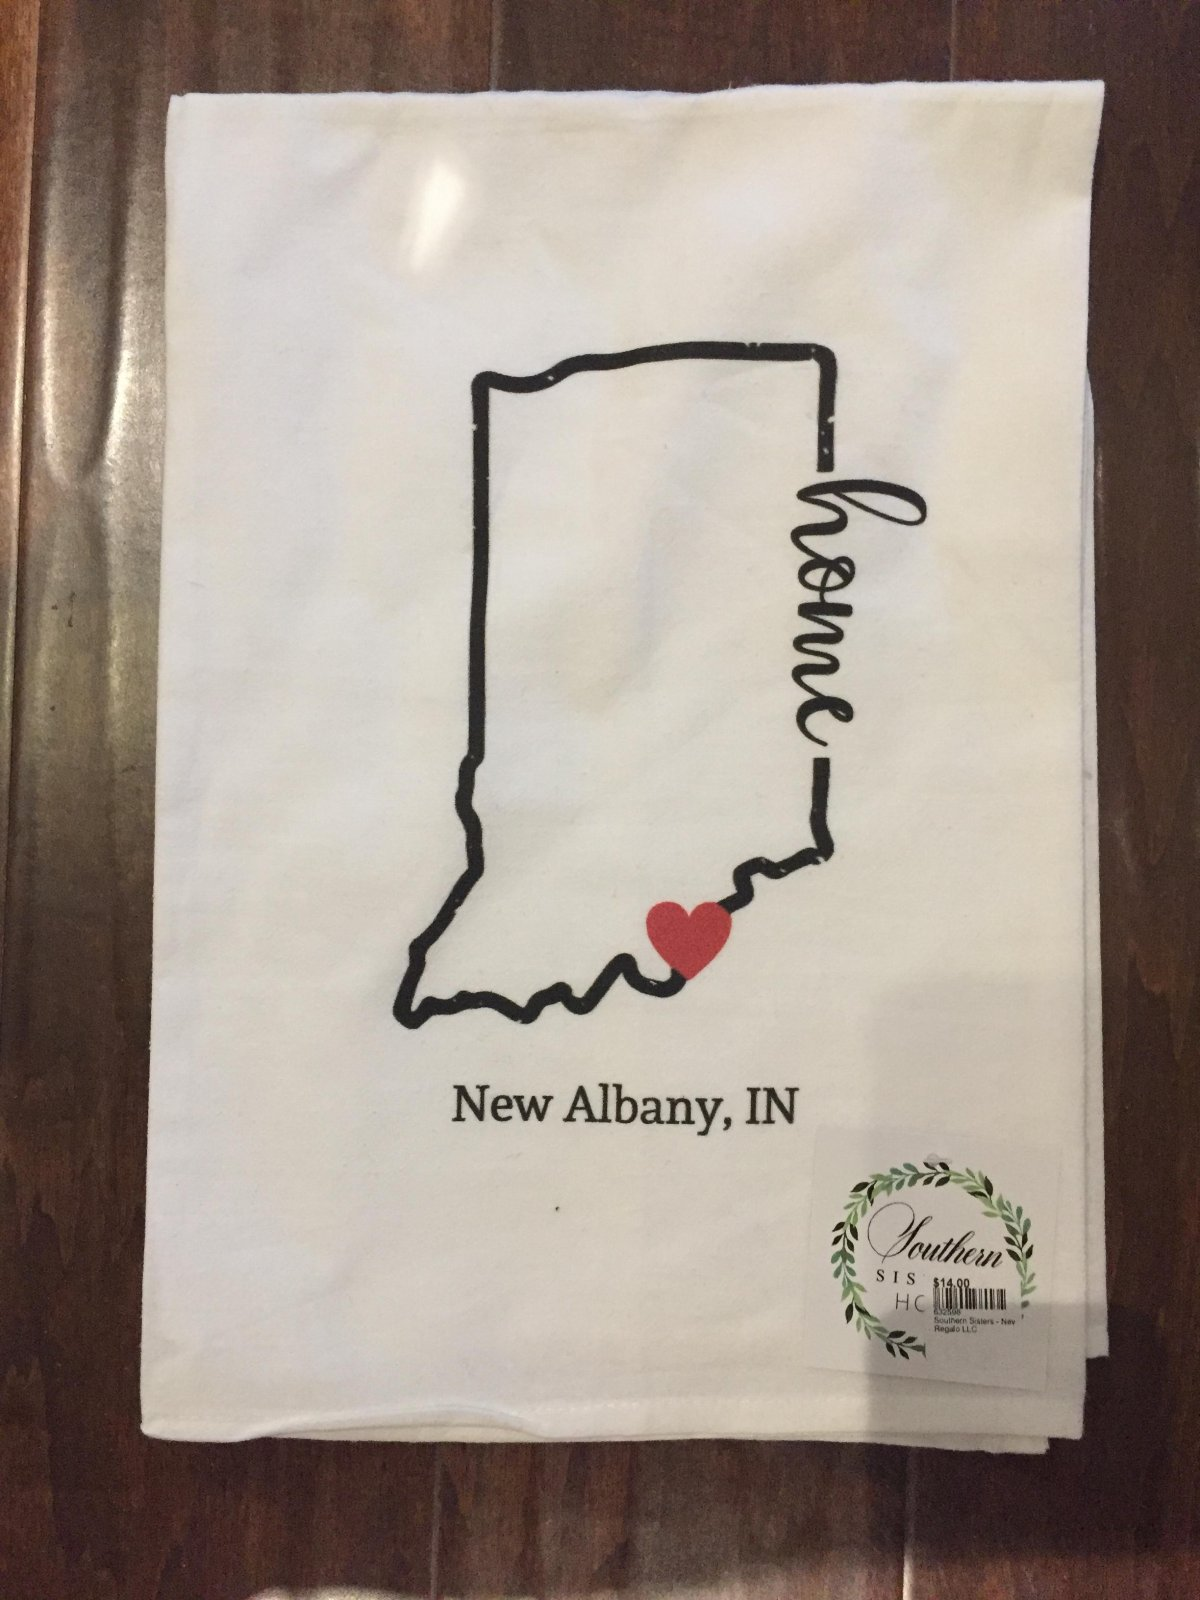 Southern Sisters - New Albany Tea Towel